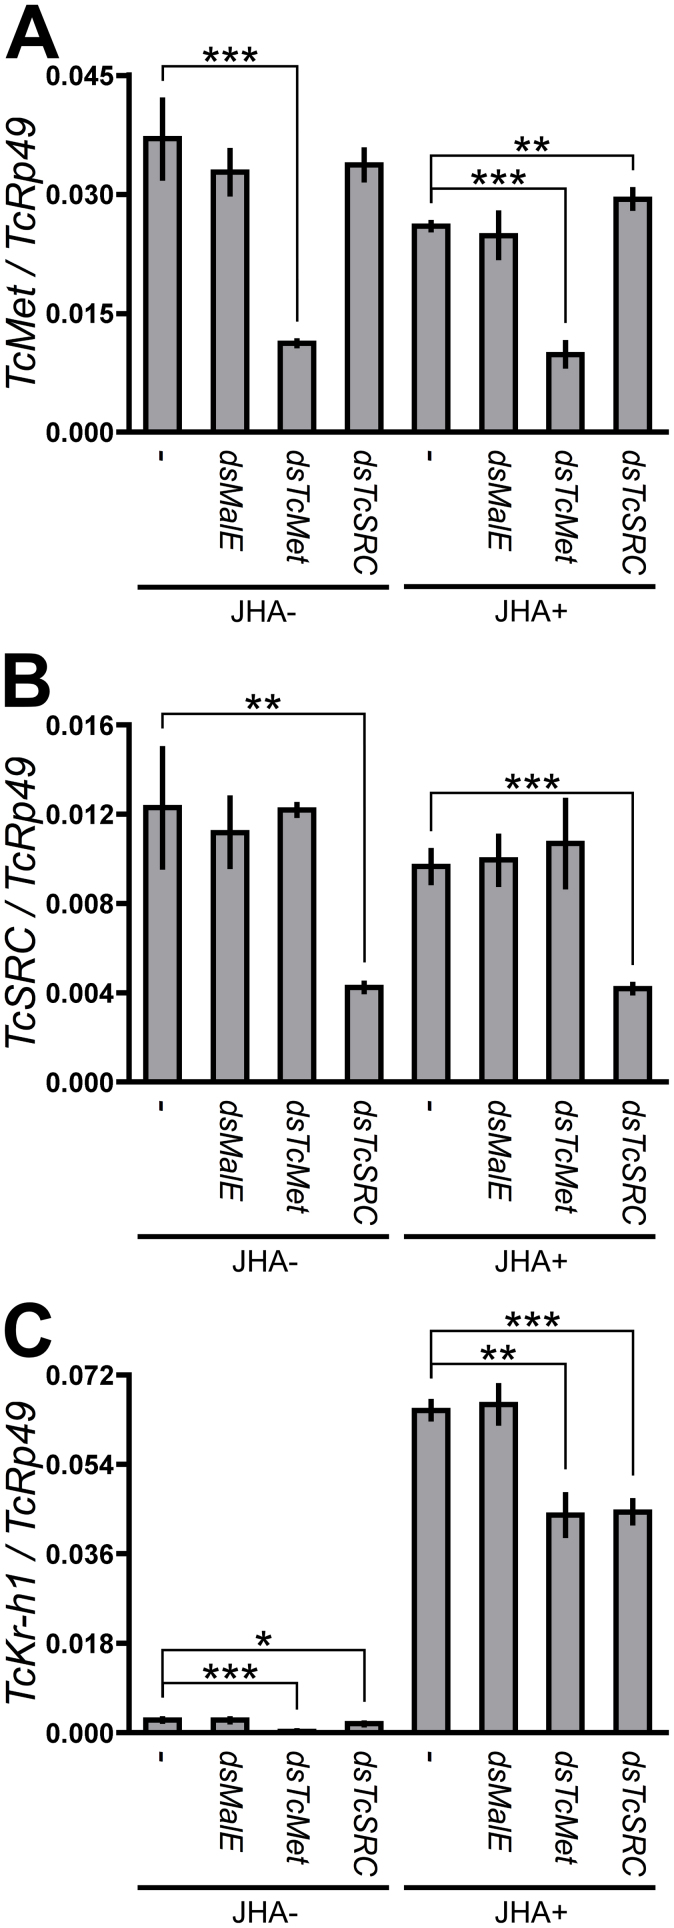 Effects of RNAi-mediated knockdown of TcMet and TcSRC on the JH-dependent induction of TcKr-h1 in Tc81 cells. Cells were soaked in 50 ng/μL dsRNA for MalE , TcMet , or TcSRC for 60 h. Control cells (−) were not treated with dsRNA. Cells were then incubated in media containing 10 μM JHA (JHA+) or JHA-free media (JHA-) for 2 h, and TcMet (A), TcSRC (B), and TcKr-h1 (C) transcript levels were determined by qPCR (mean ± SD, n = 3). Data were analyzed using Student's t -tests (*** P